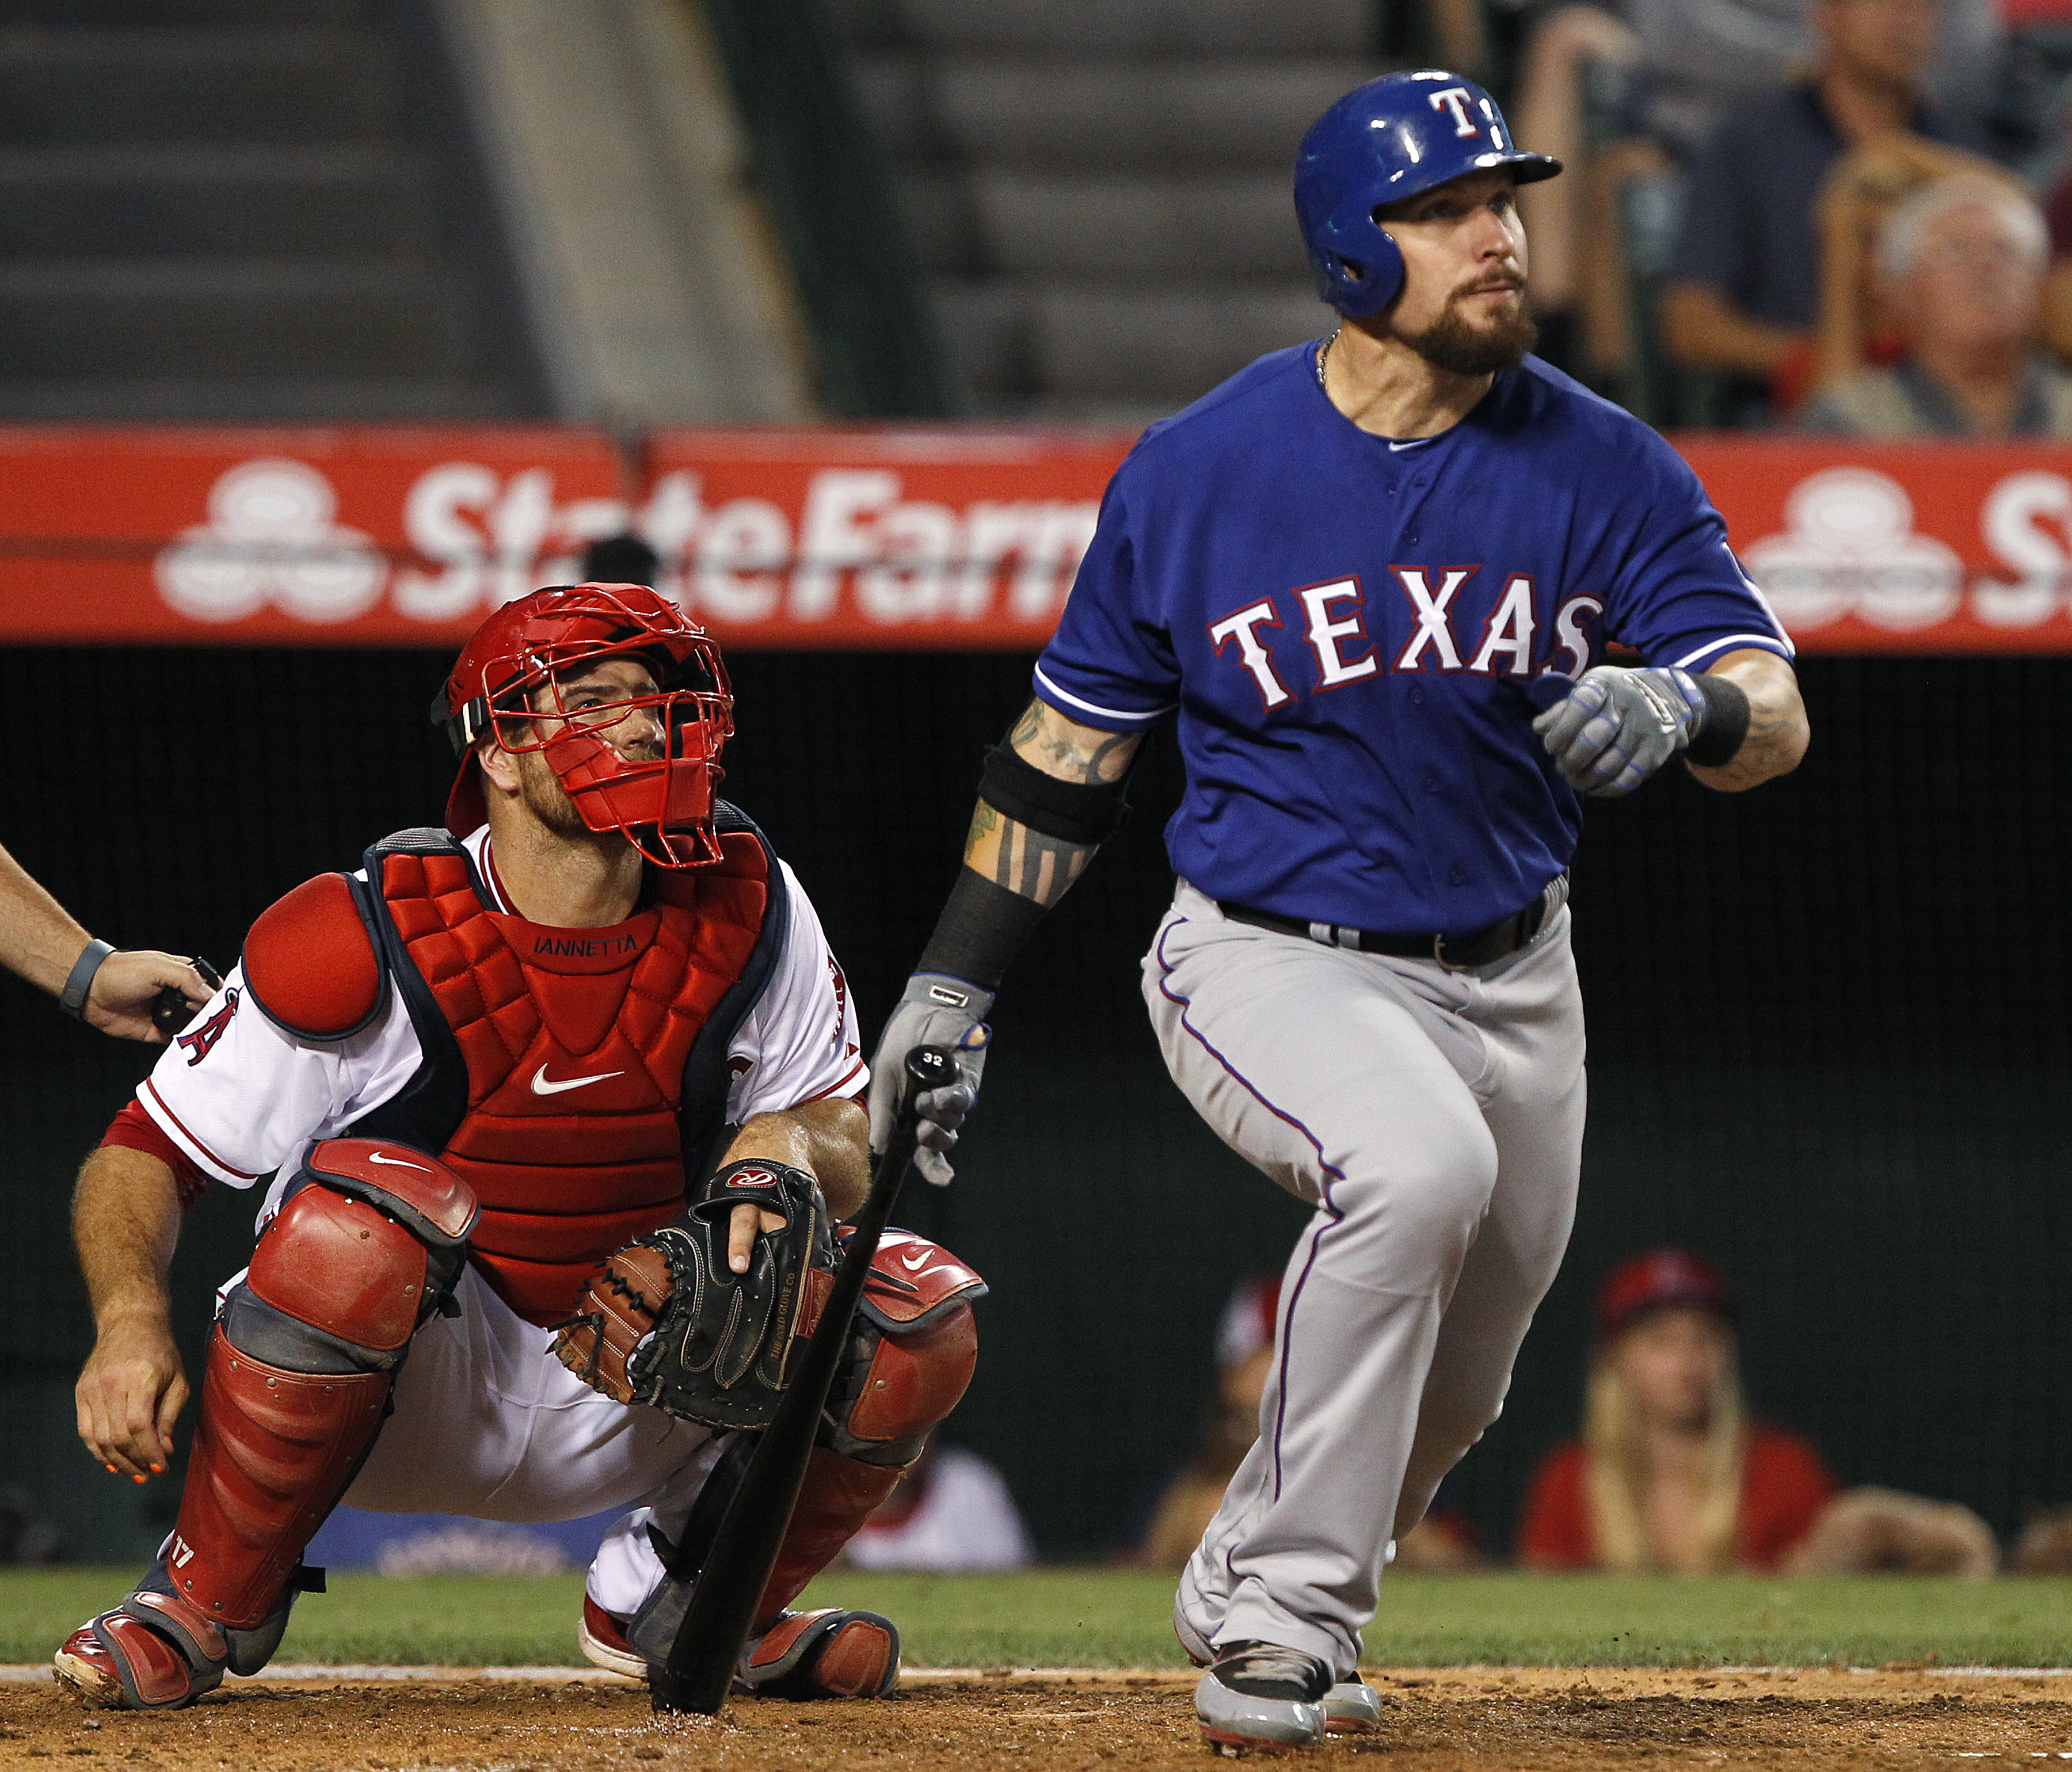 Texas Rangers' Josh Hamilton, right, watches his double in front of Los Angeles Angels catcher Chris Iannetta during the fifth inning of a baseball game in Anaheim, Calif., Friday, July 24, 2015. (AP Photo/Alex Gallardo)